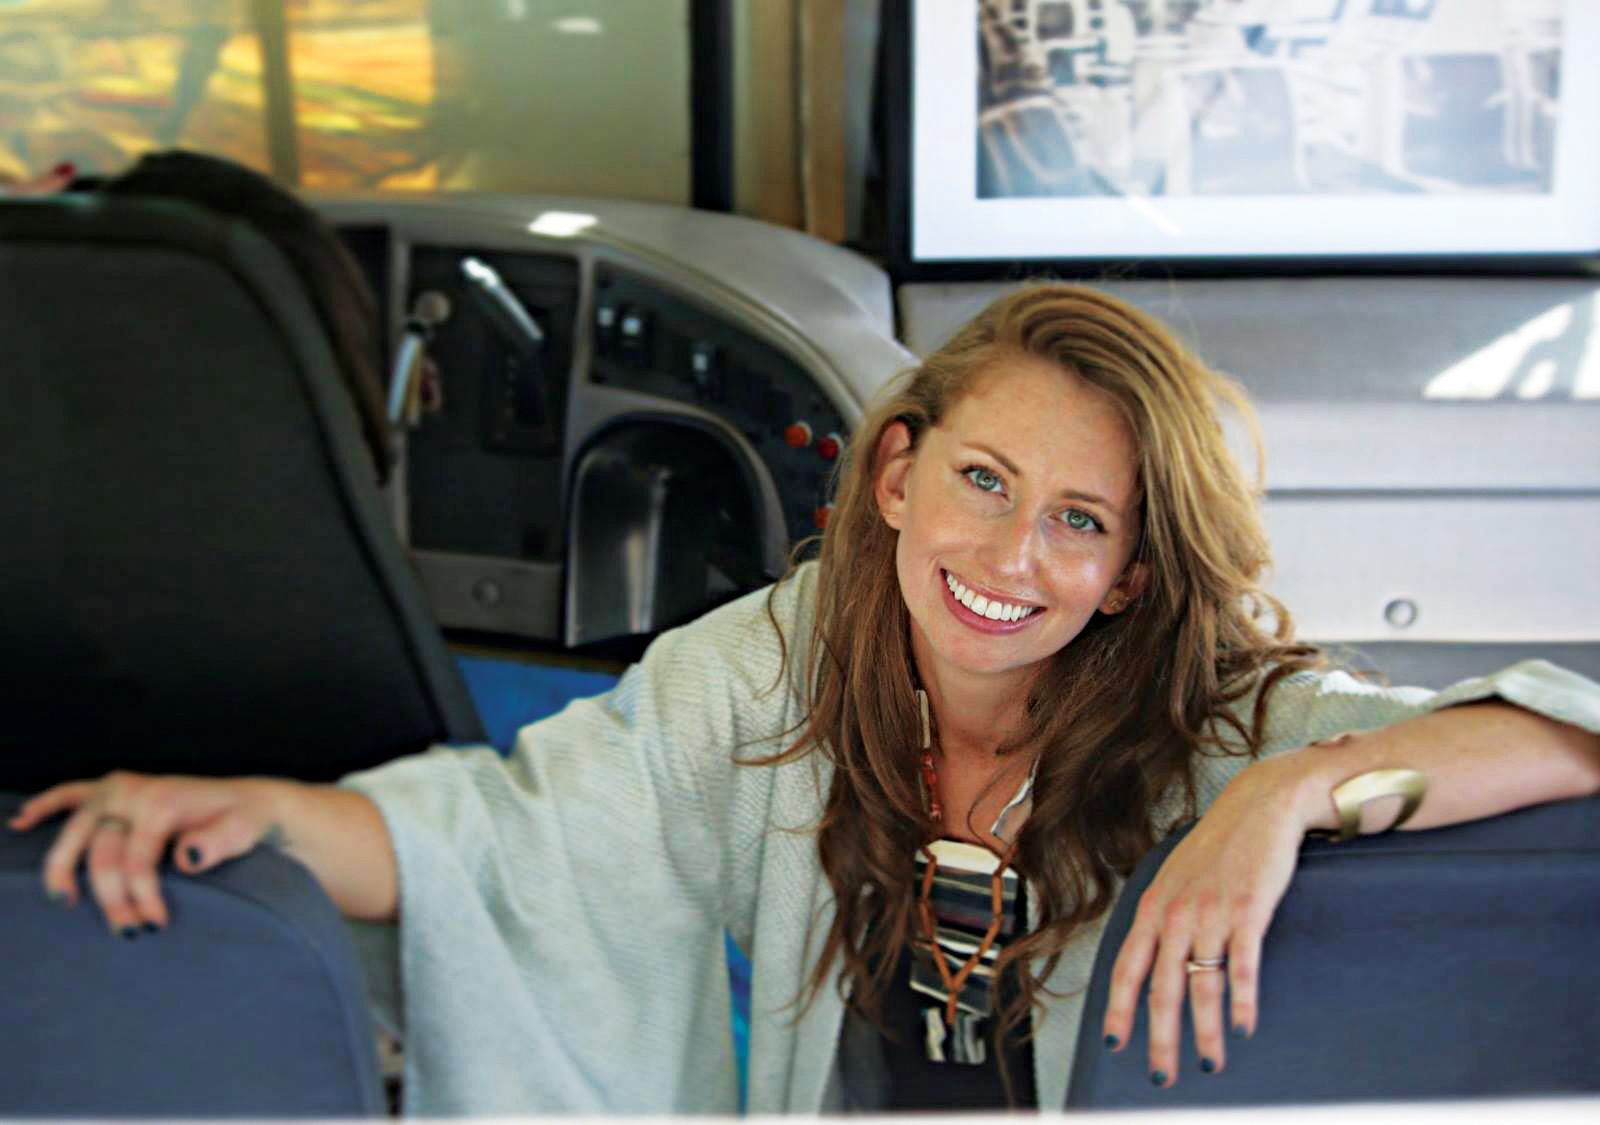 With ingenuity, vision, and creativity, Davis has created a touring art show – in a school bus. She is seen here in the newly purchased bus.